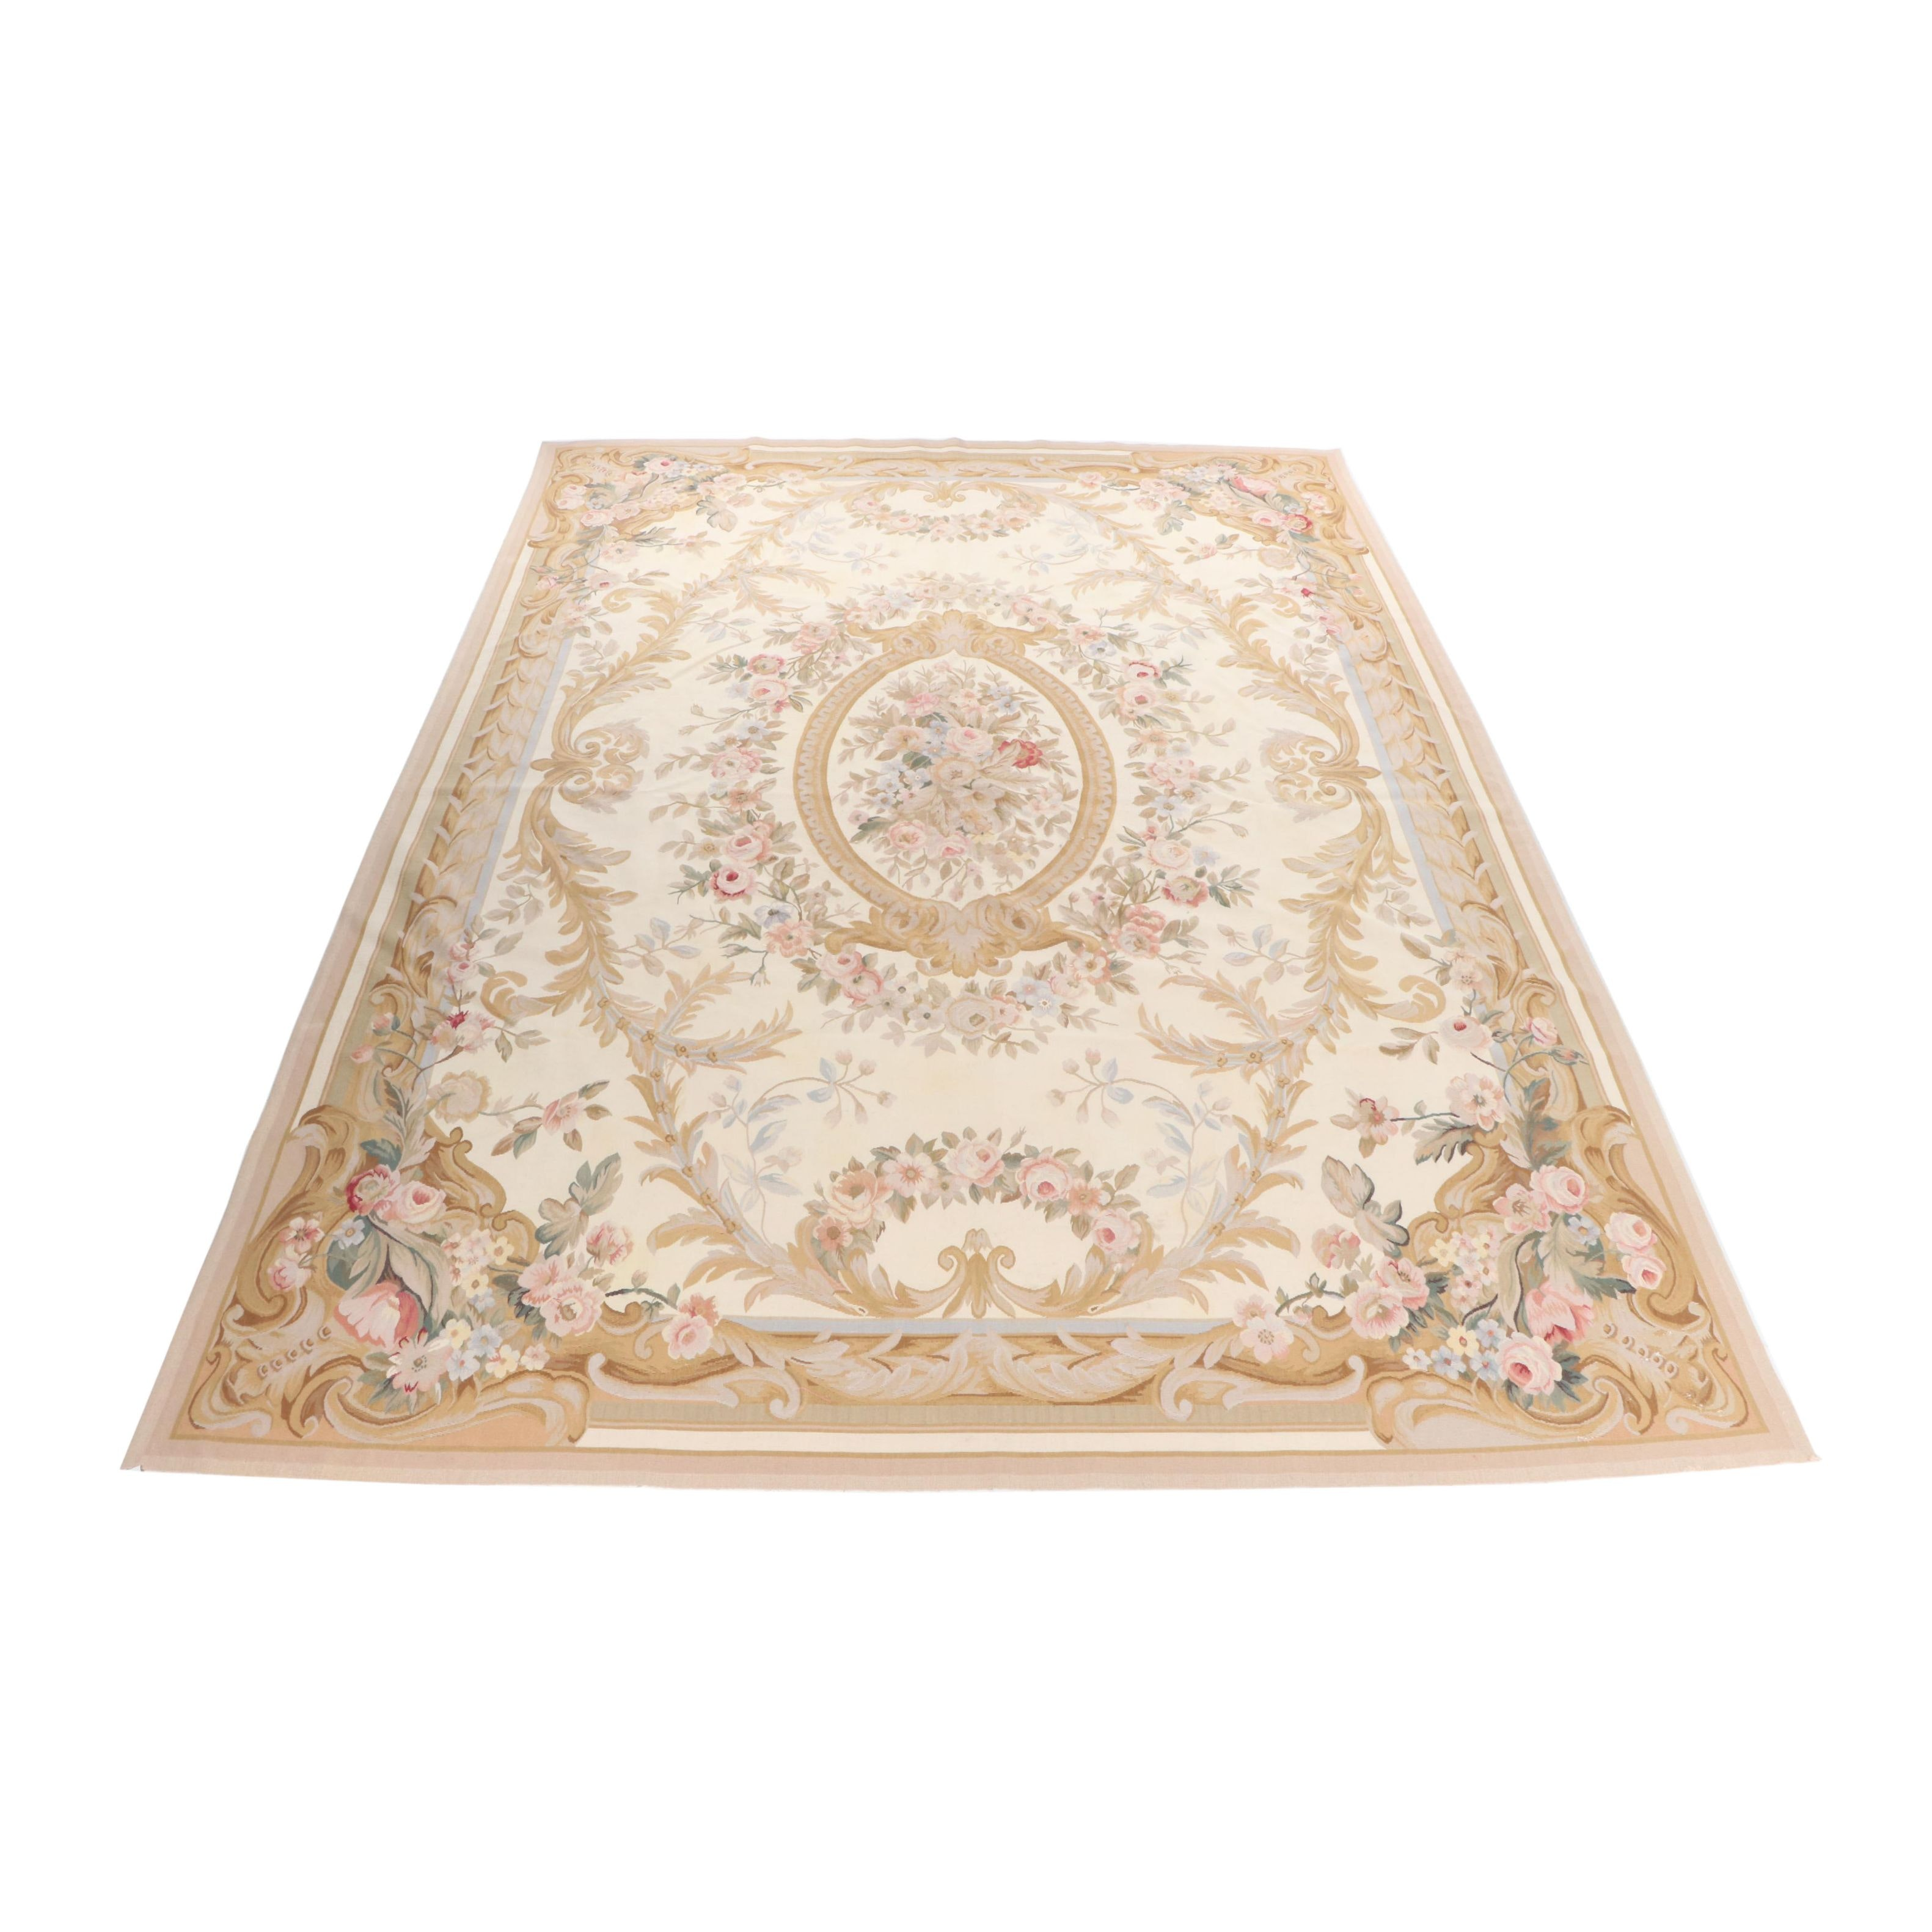 Handmade Indian Aubusson Style Woven and Needlepoint Rug